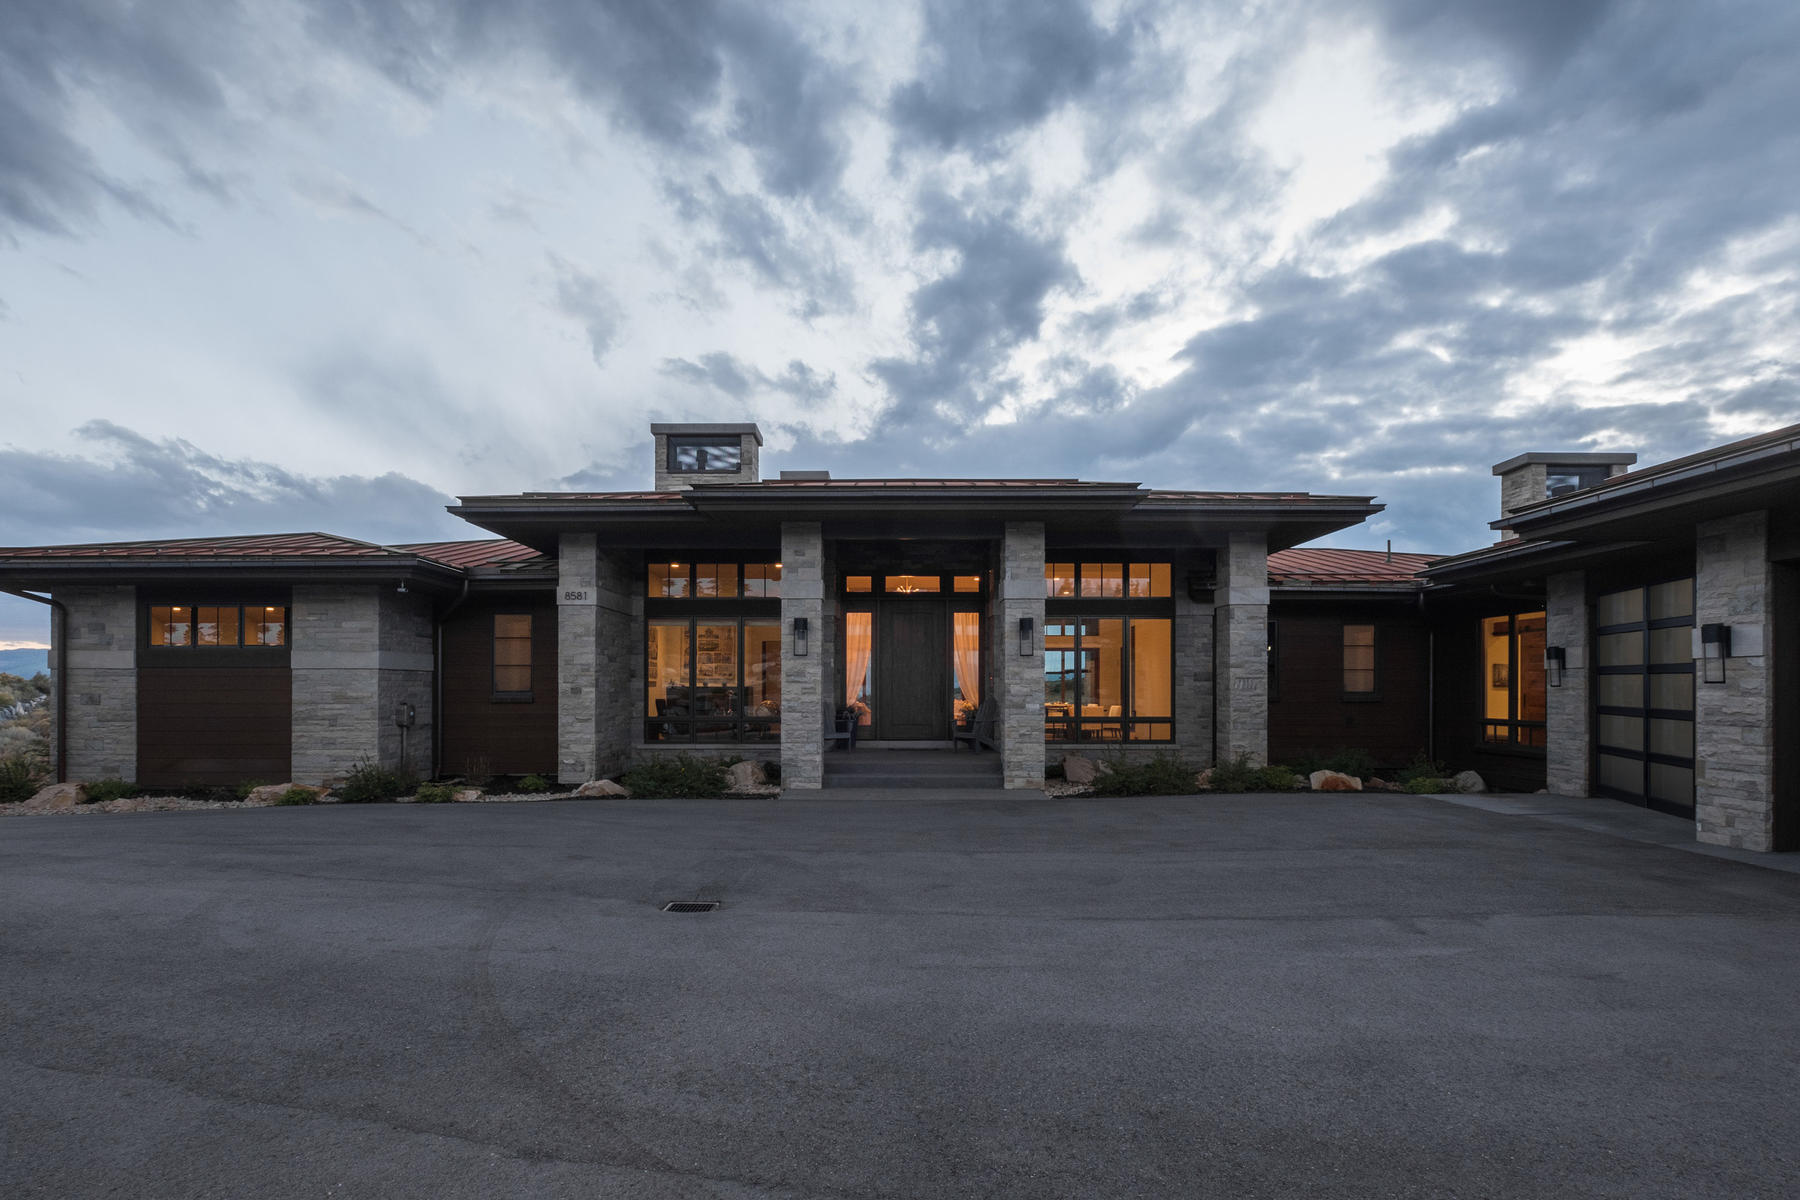 一戸建て のために 売買 アット Beautiful Contemporary Home Overlooking the 11th Hole of the Pete Dye Course 8581 N Marmot Circle Lot 91, Park City, ユタ, 84098 アメリカ合衆国